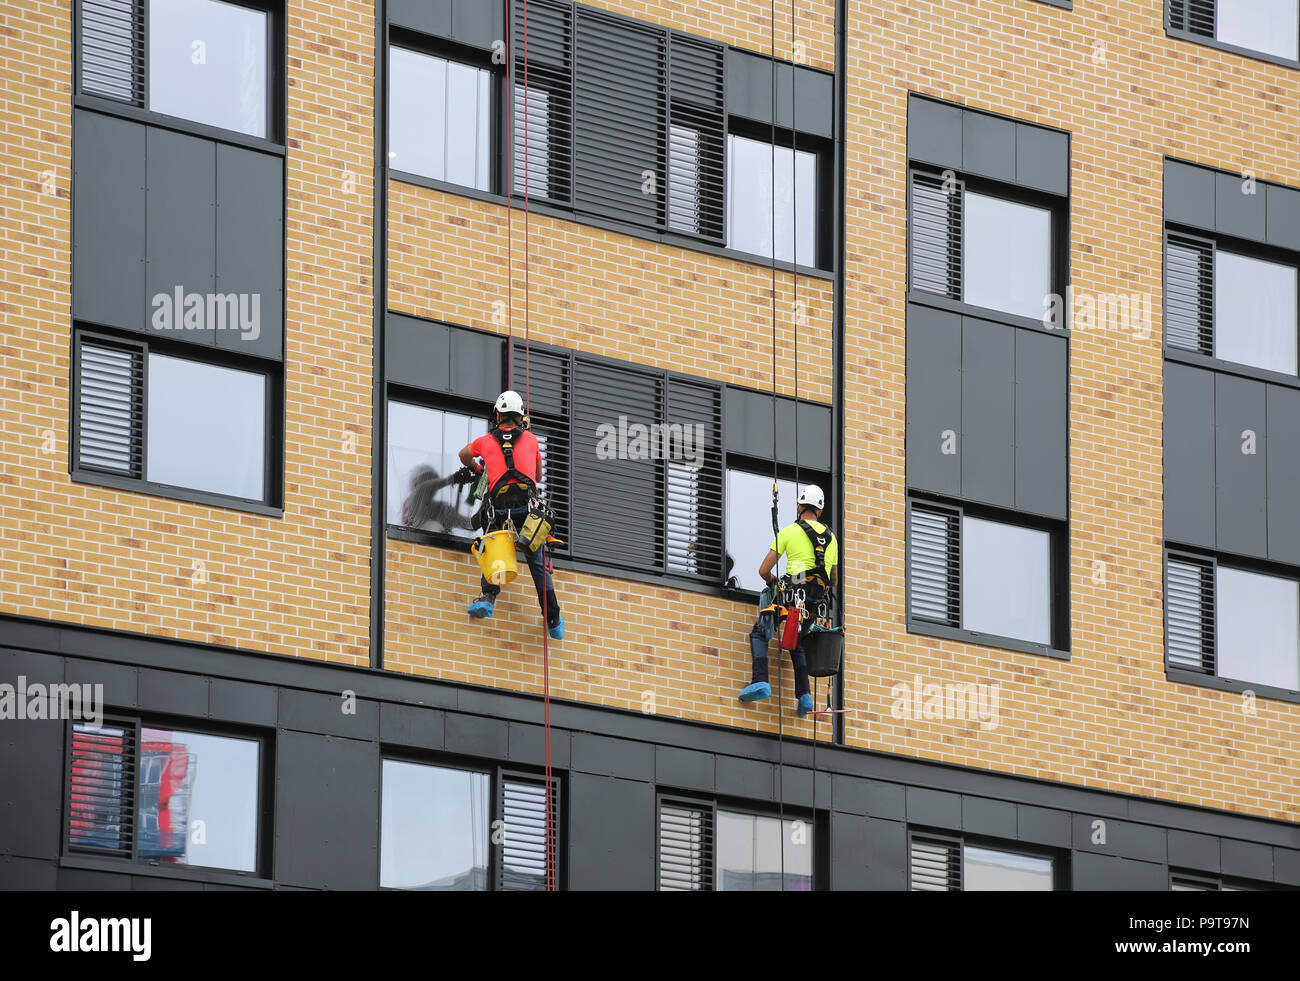 Two window cleaners use abseiling ropes to access windows on a new tower block in Portsmouth town centre, Hampshire, UK - Stock Image